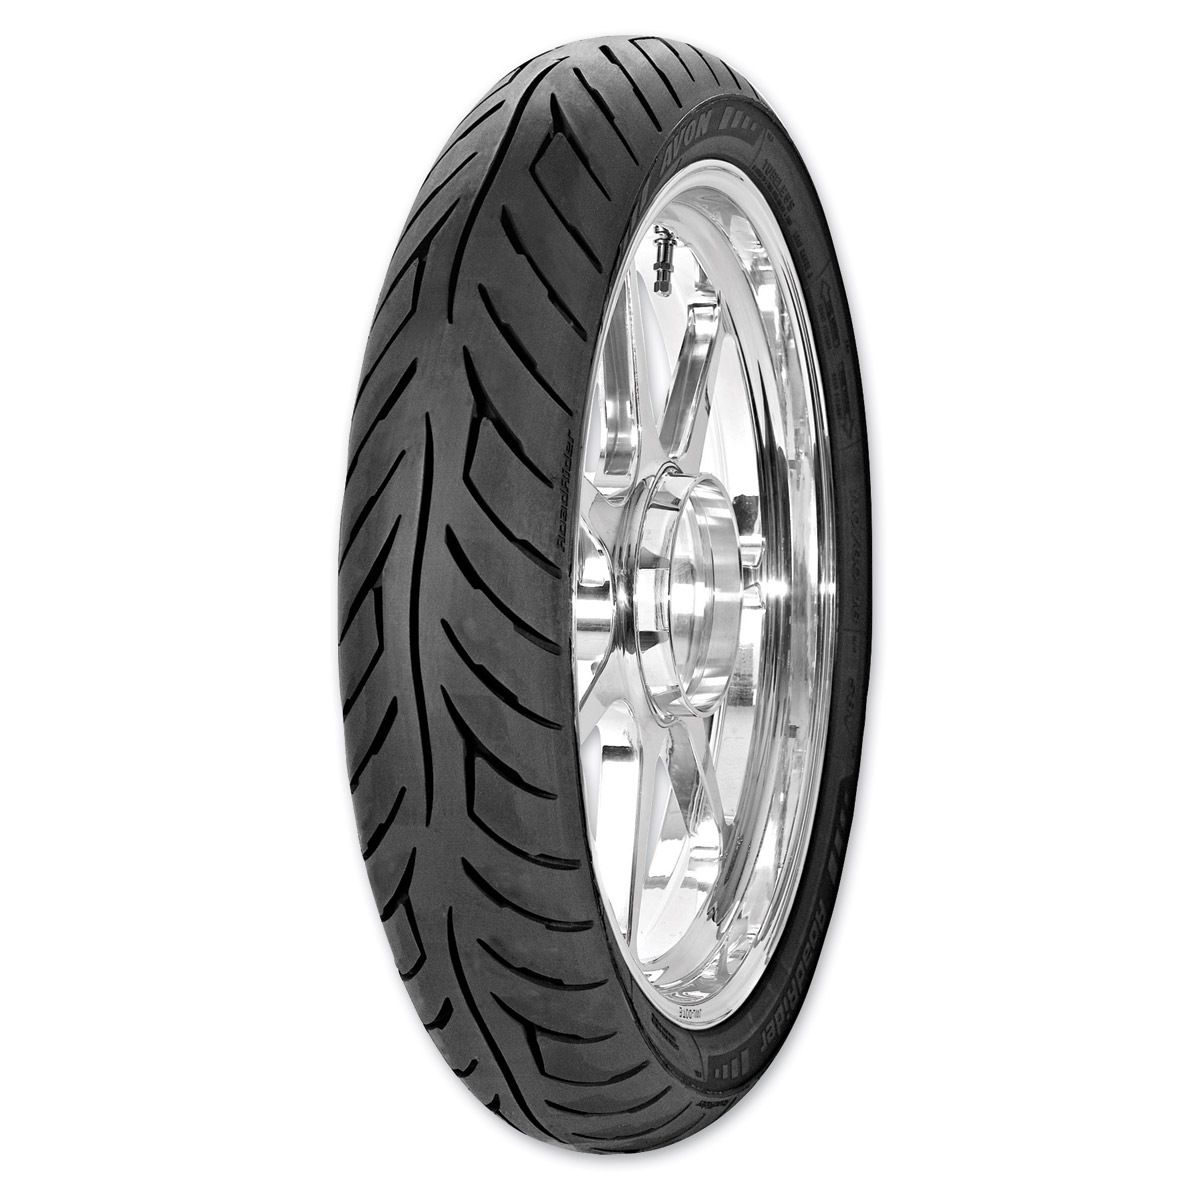 Avon AM26 Roadrider 110/80-17 Front Tire